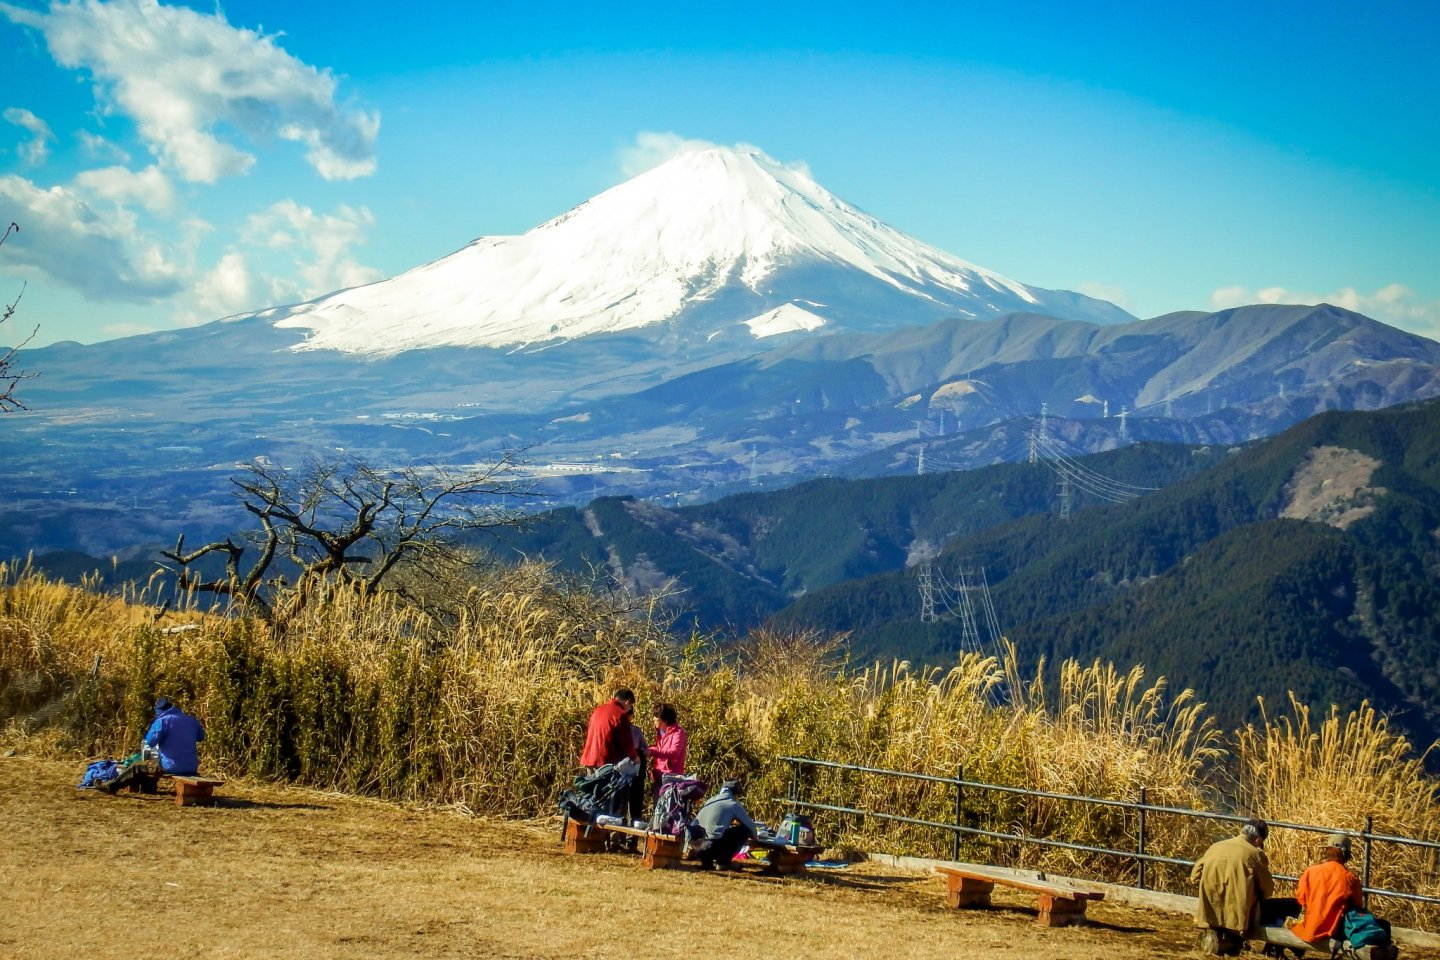 Just one of the many great panoramic views of Mount Fuji